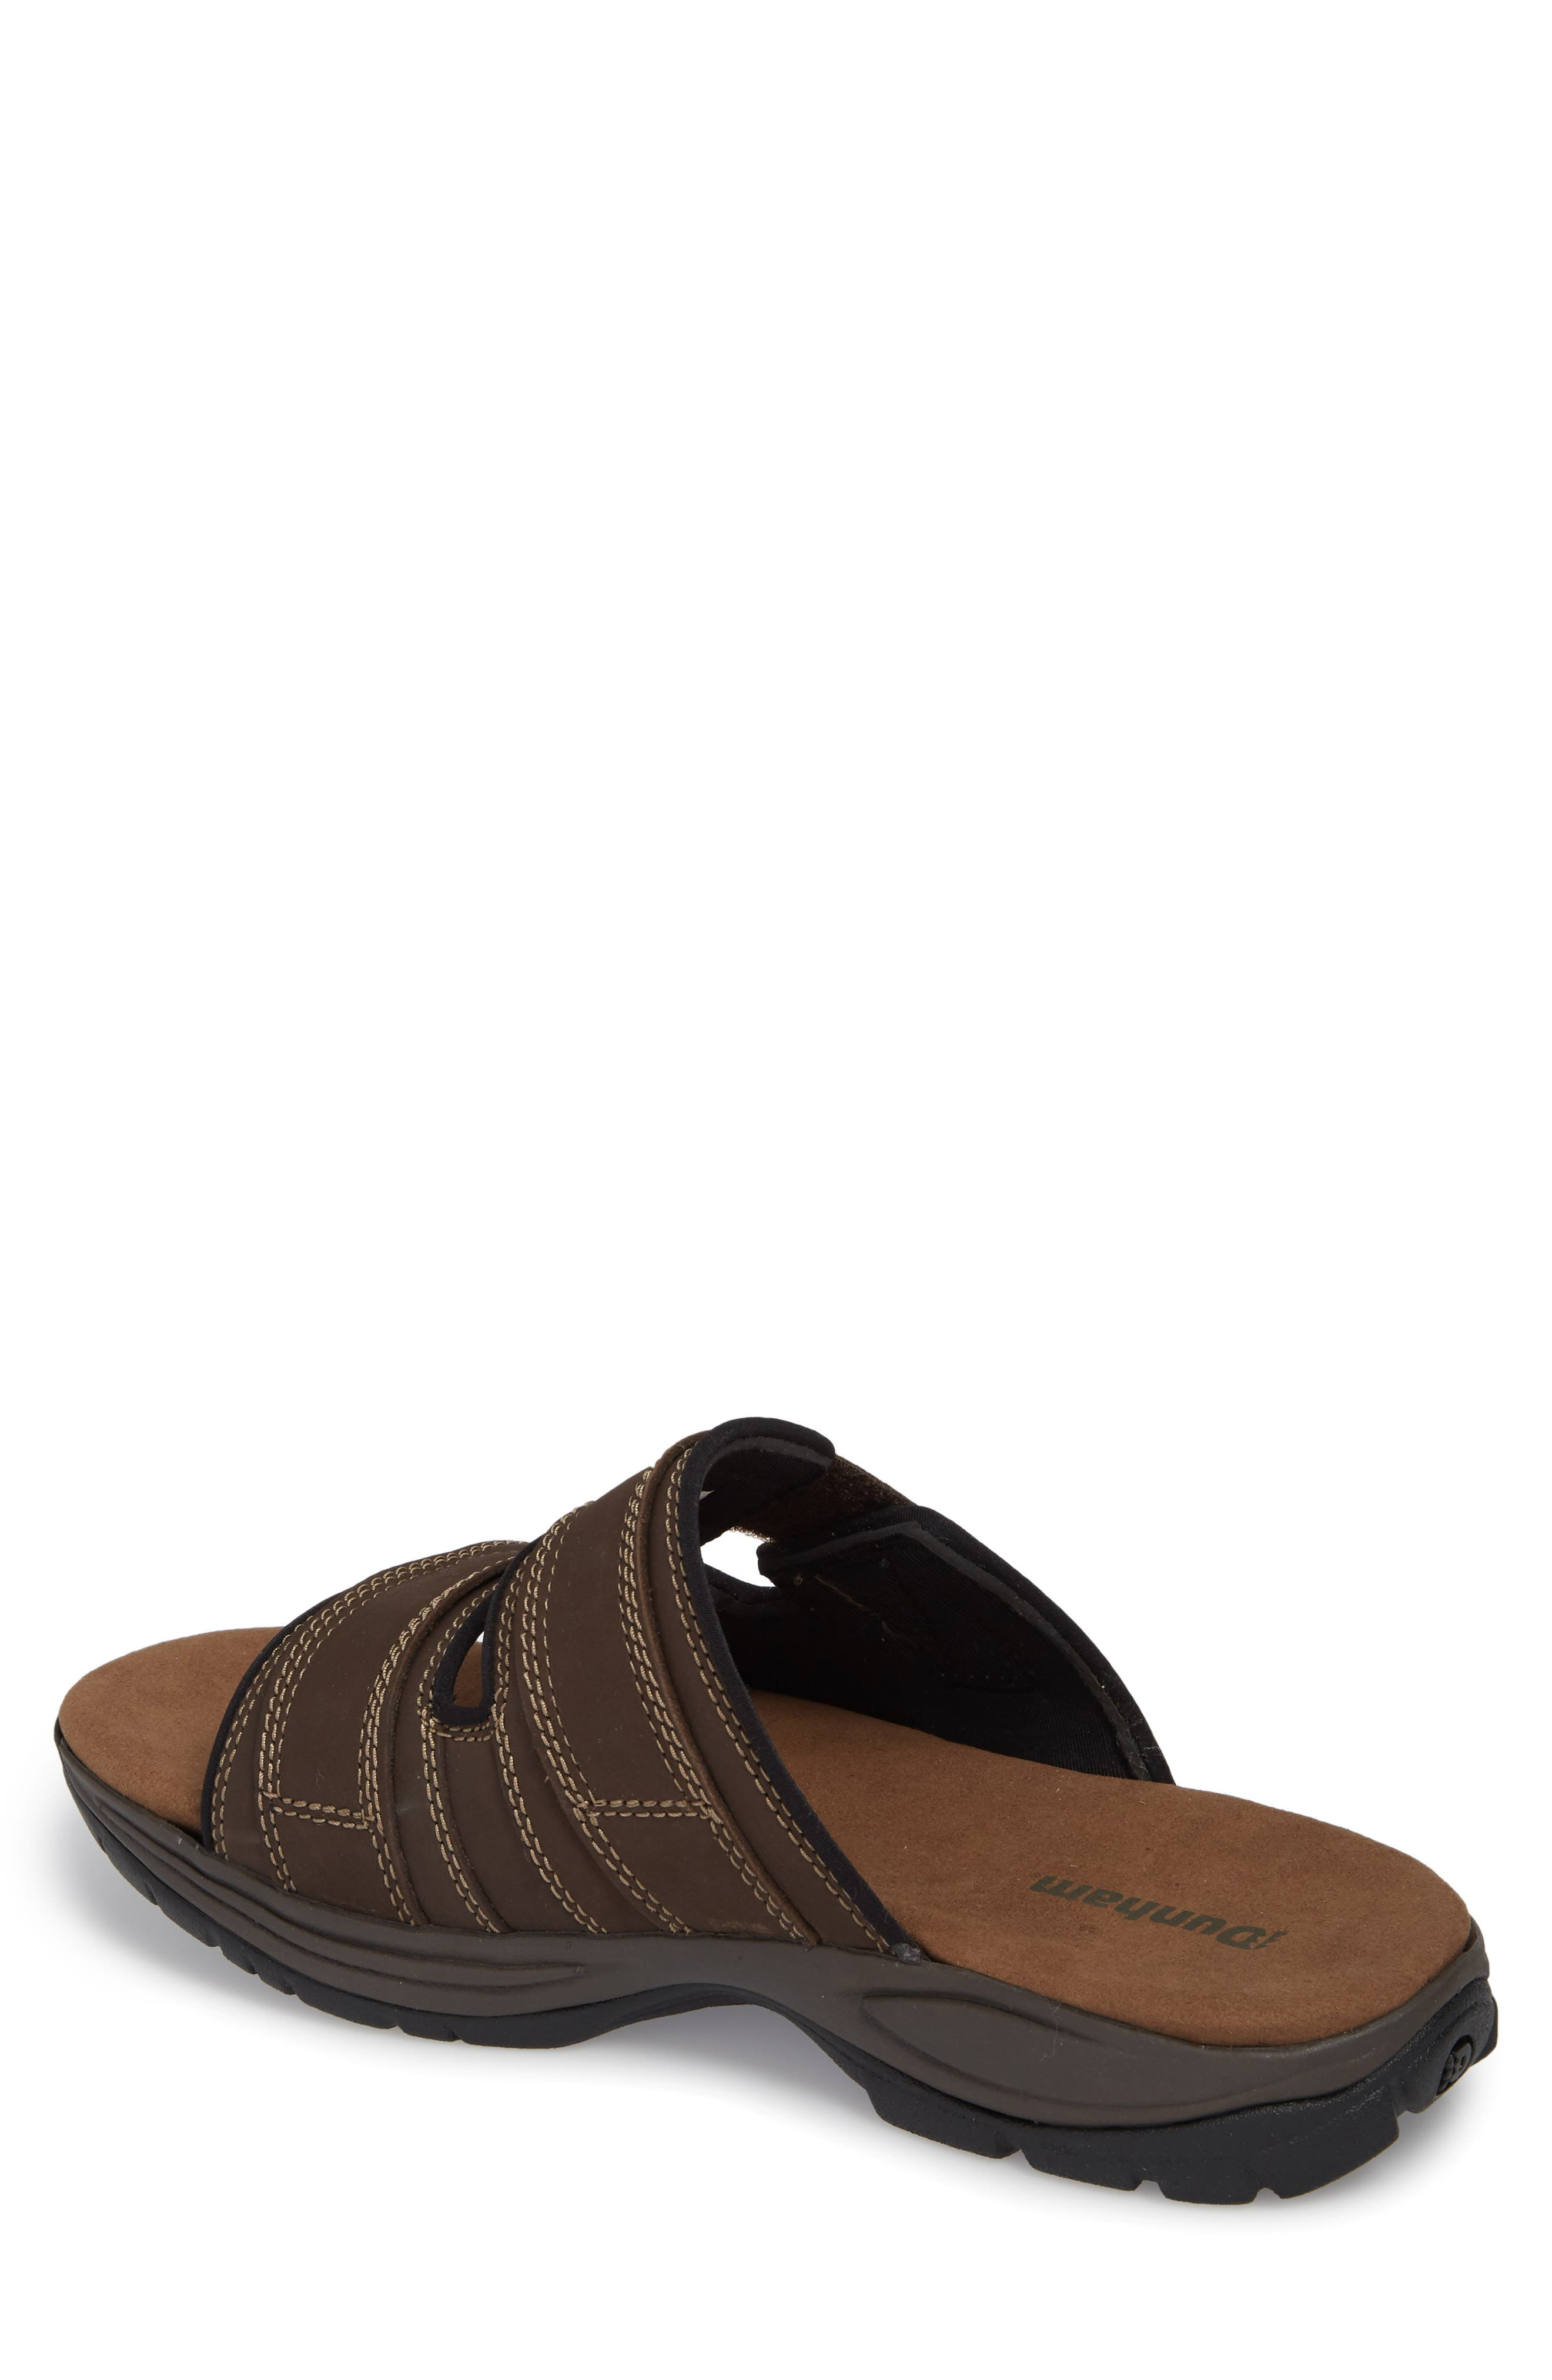 Newport Slide Sandal,                             Alternate thumbnail 2, color,                             Dark Brown Leather